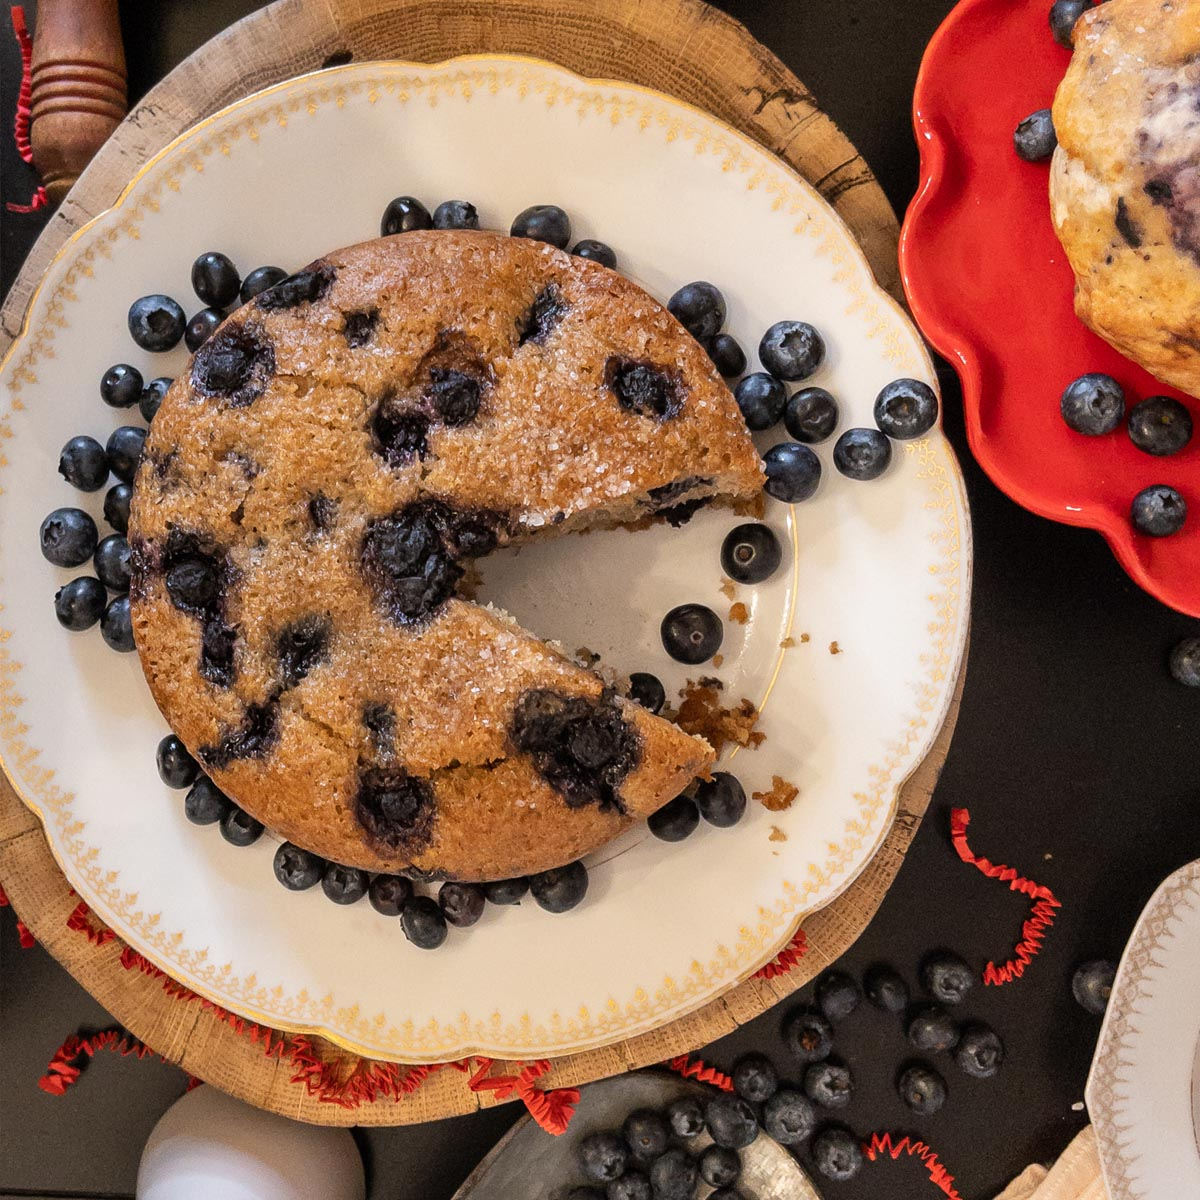 Hot Cakes Bakery - Oat Bran Blueberry Coffee Cake Feature 3